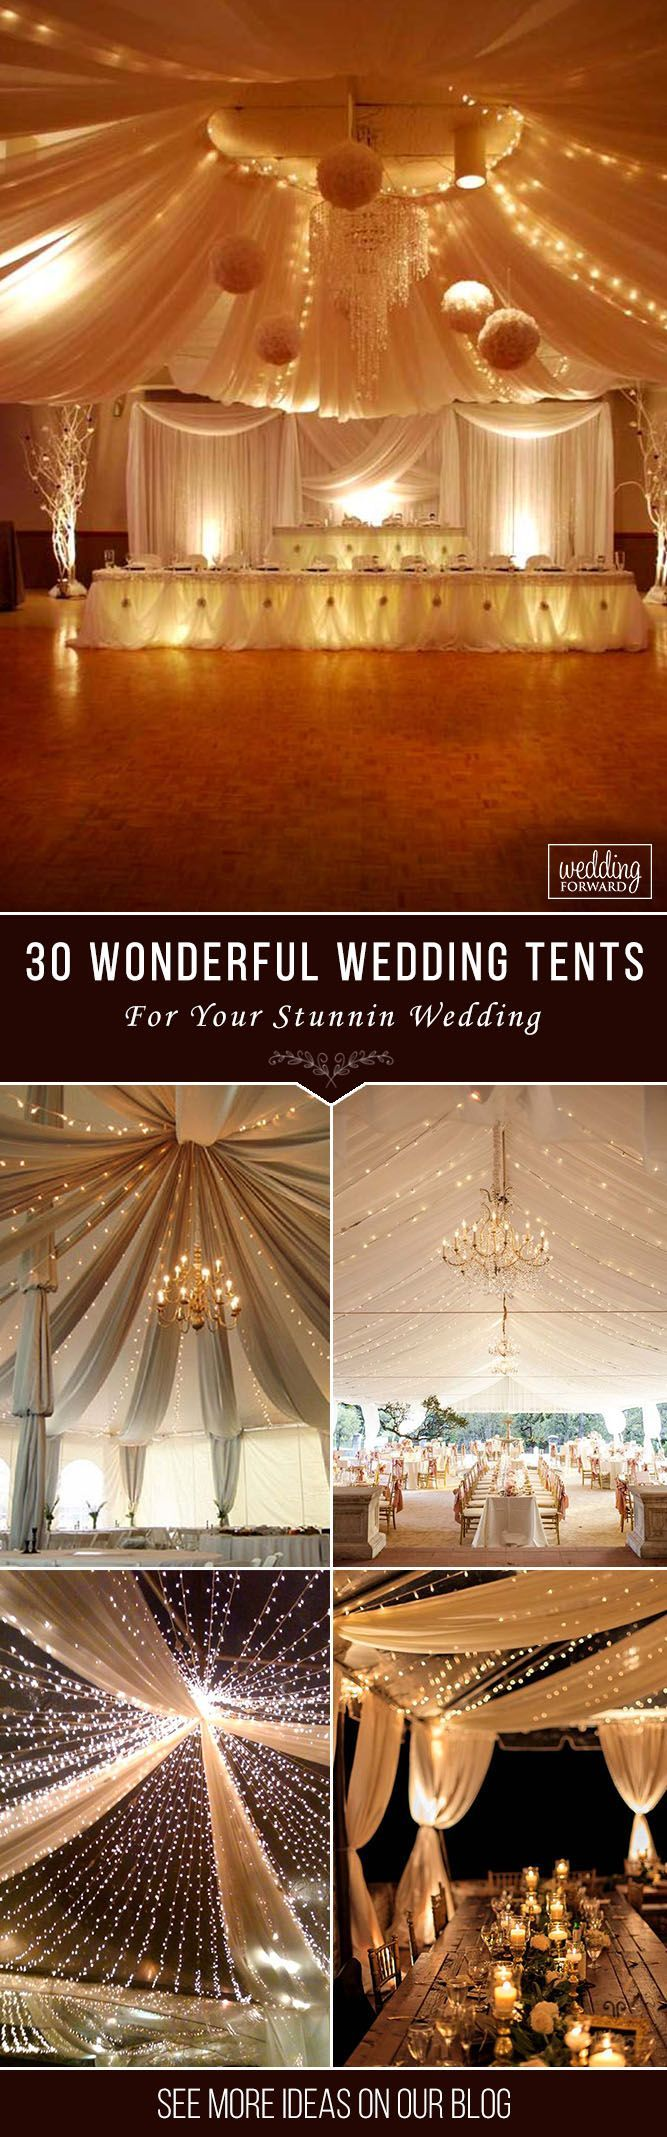 wedding planning checklist spreadsheet free%0A    Wonderful Wedding Tent Ideas For A Wedding     Look at the best wedding  tent ideas that impress you  Everything should be perfect for your special  day